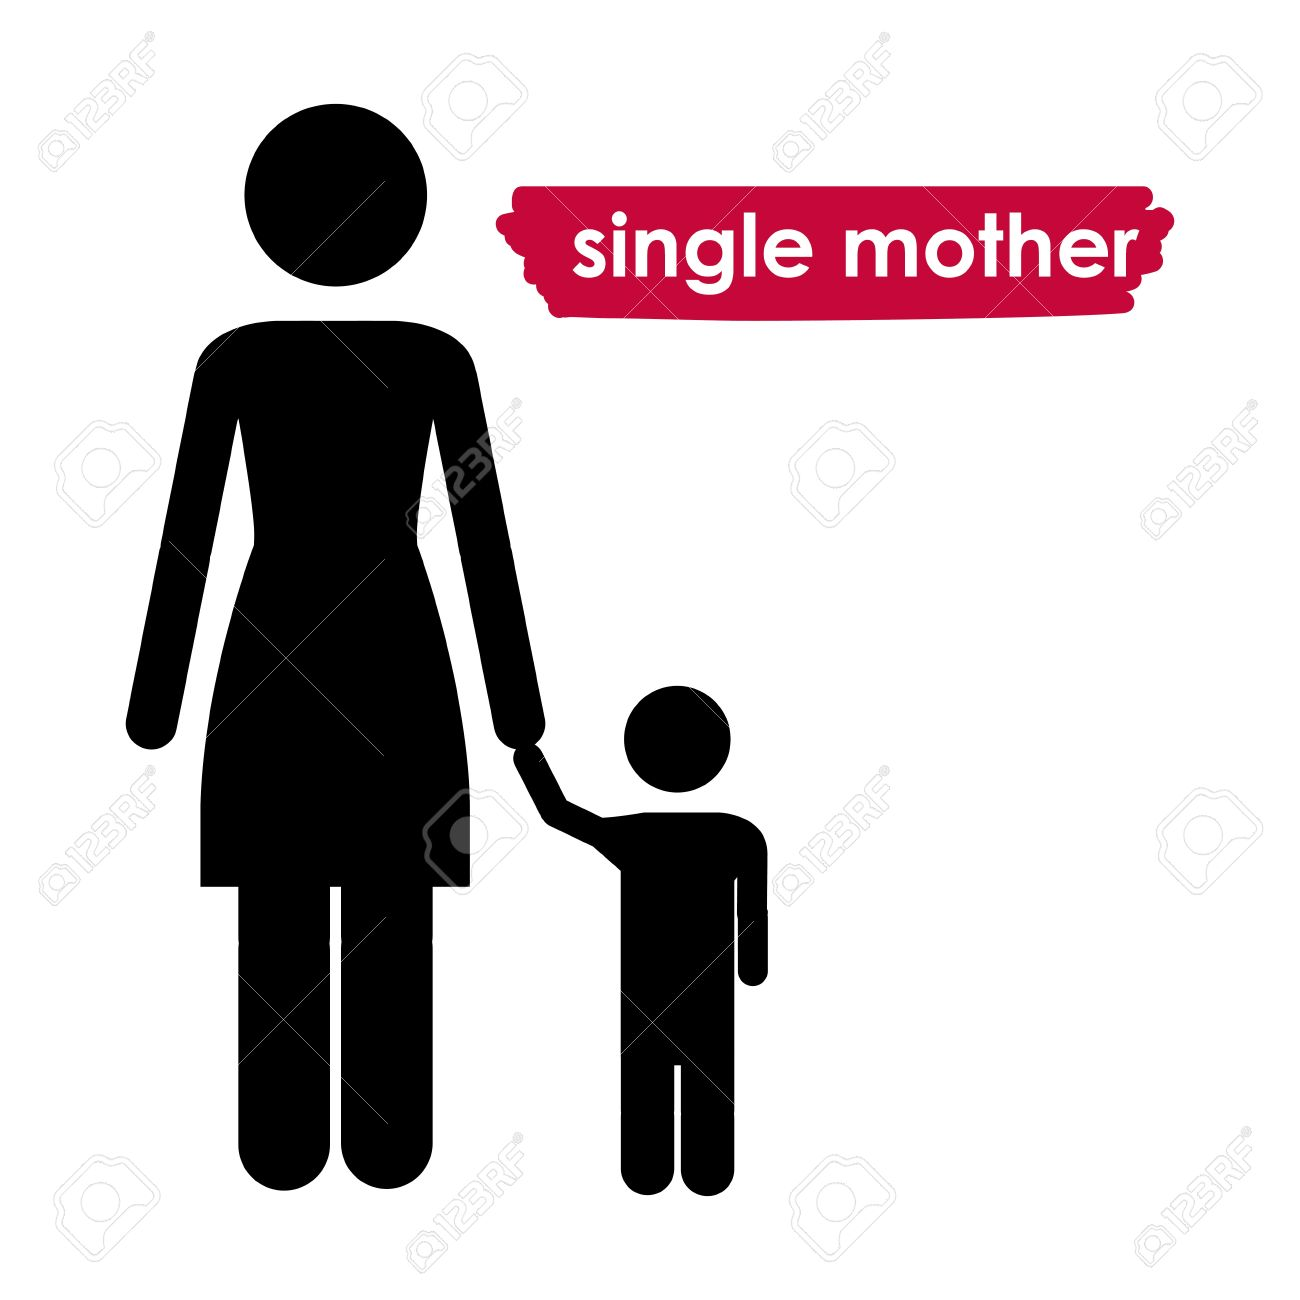 Single parent clipart.